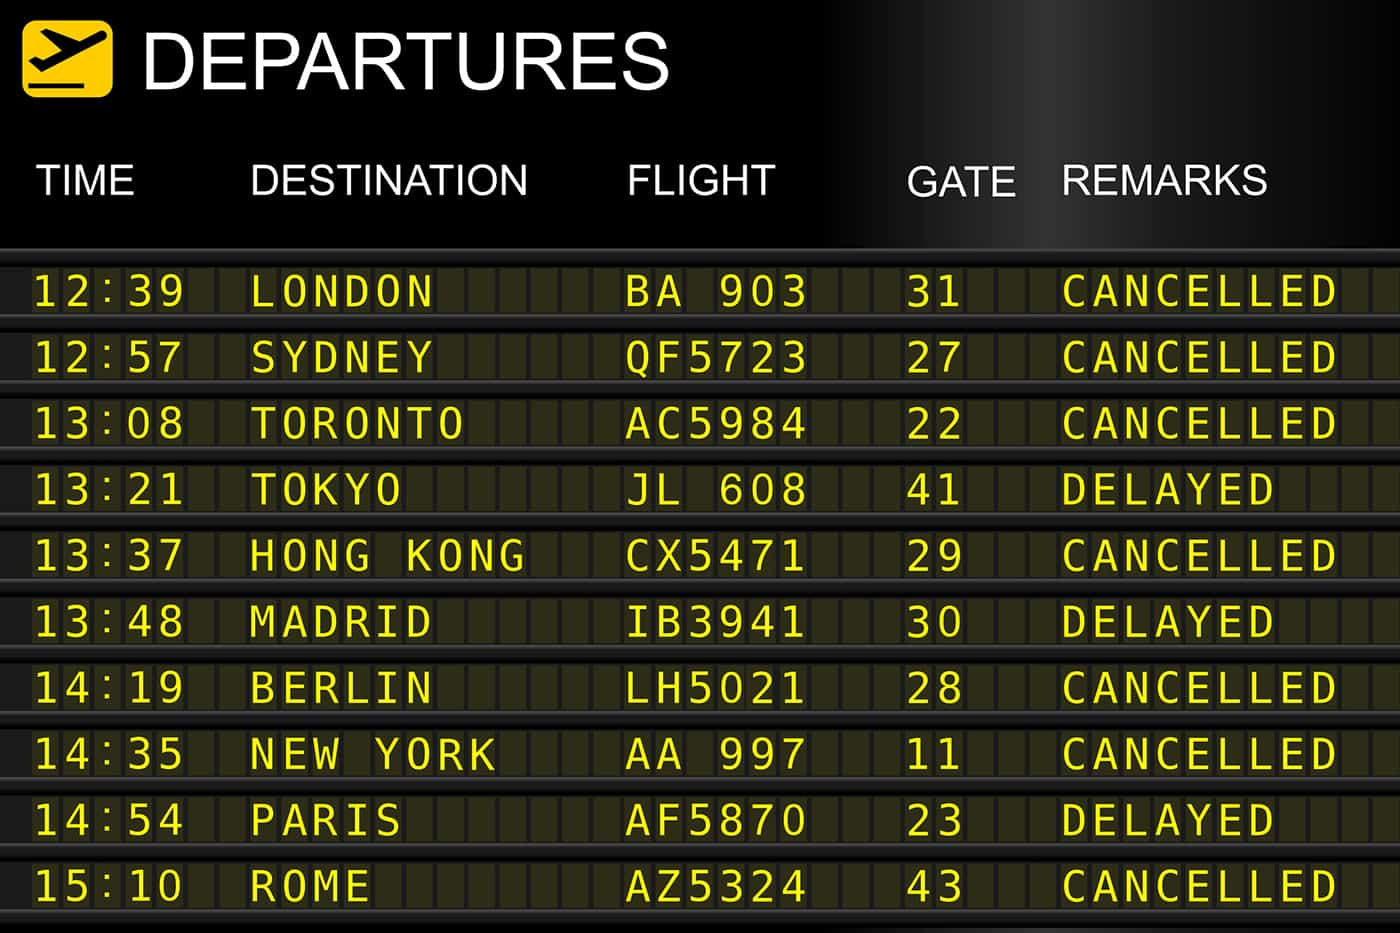 Cancelled flights during Coronavirus COVID-19